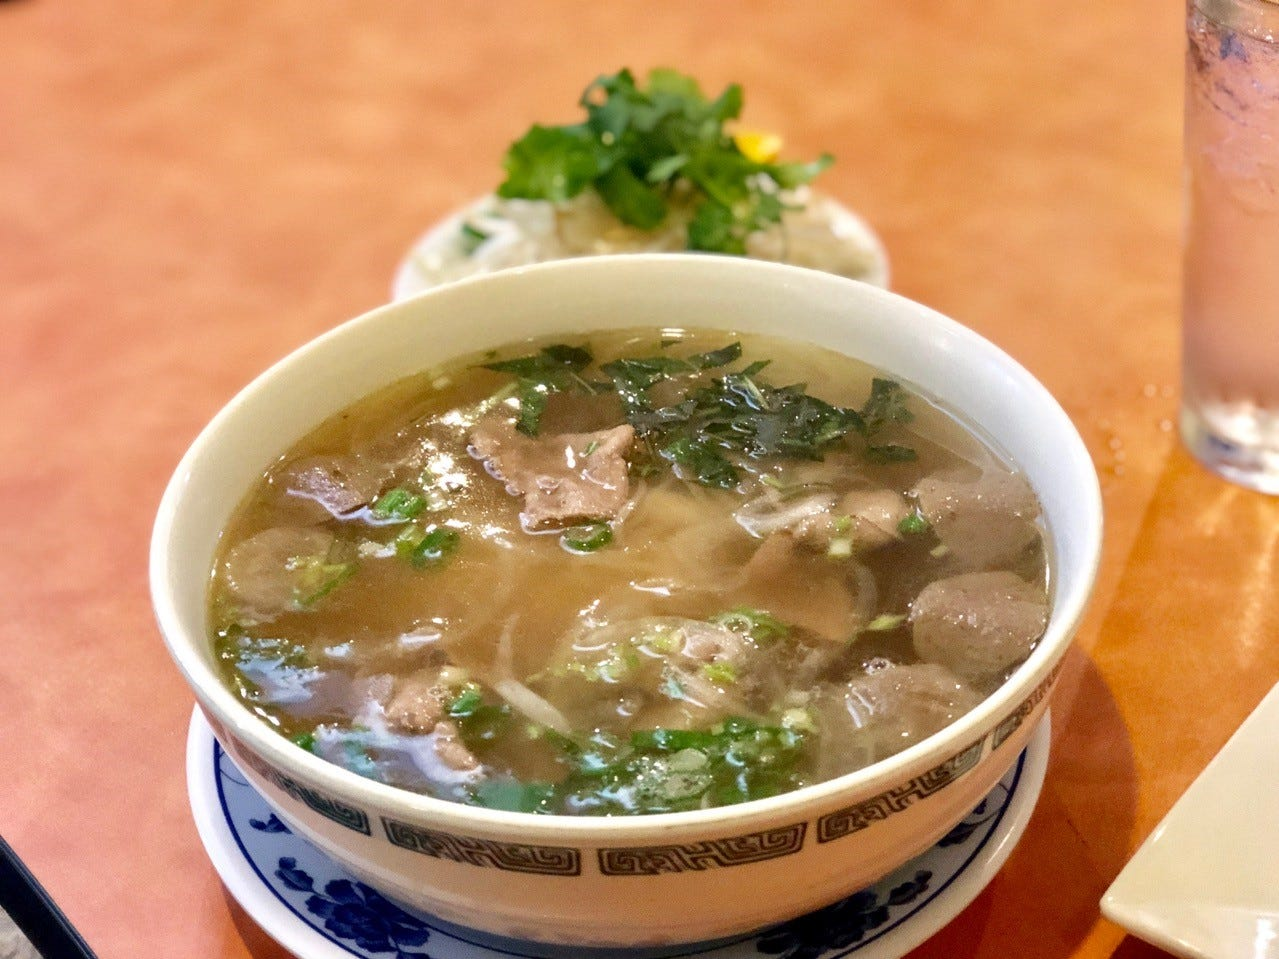 An order of pho with beef and meatballs at Pho Saigon.